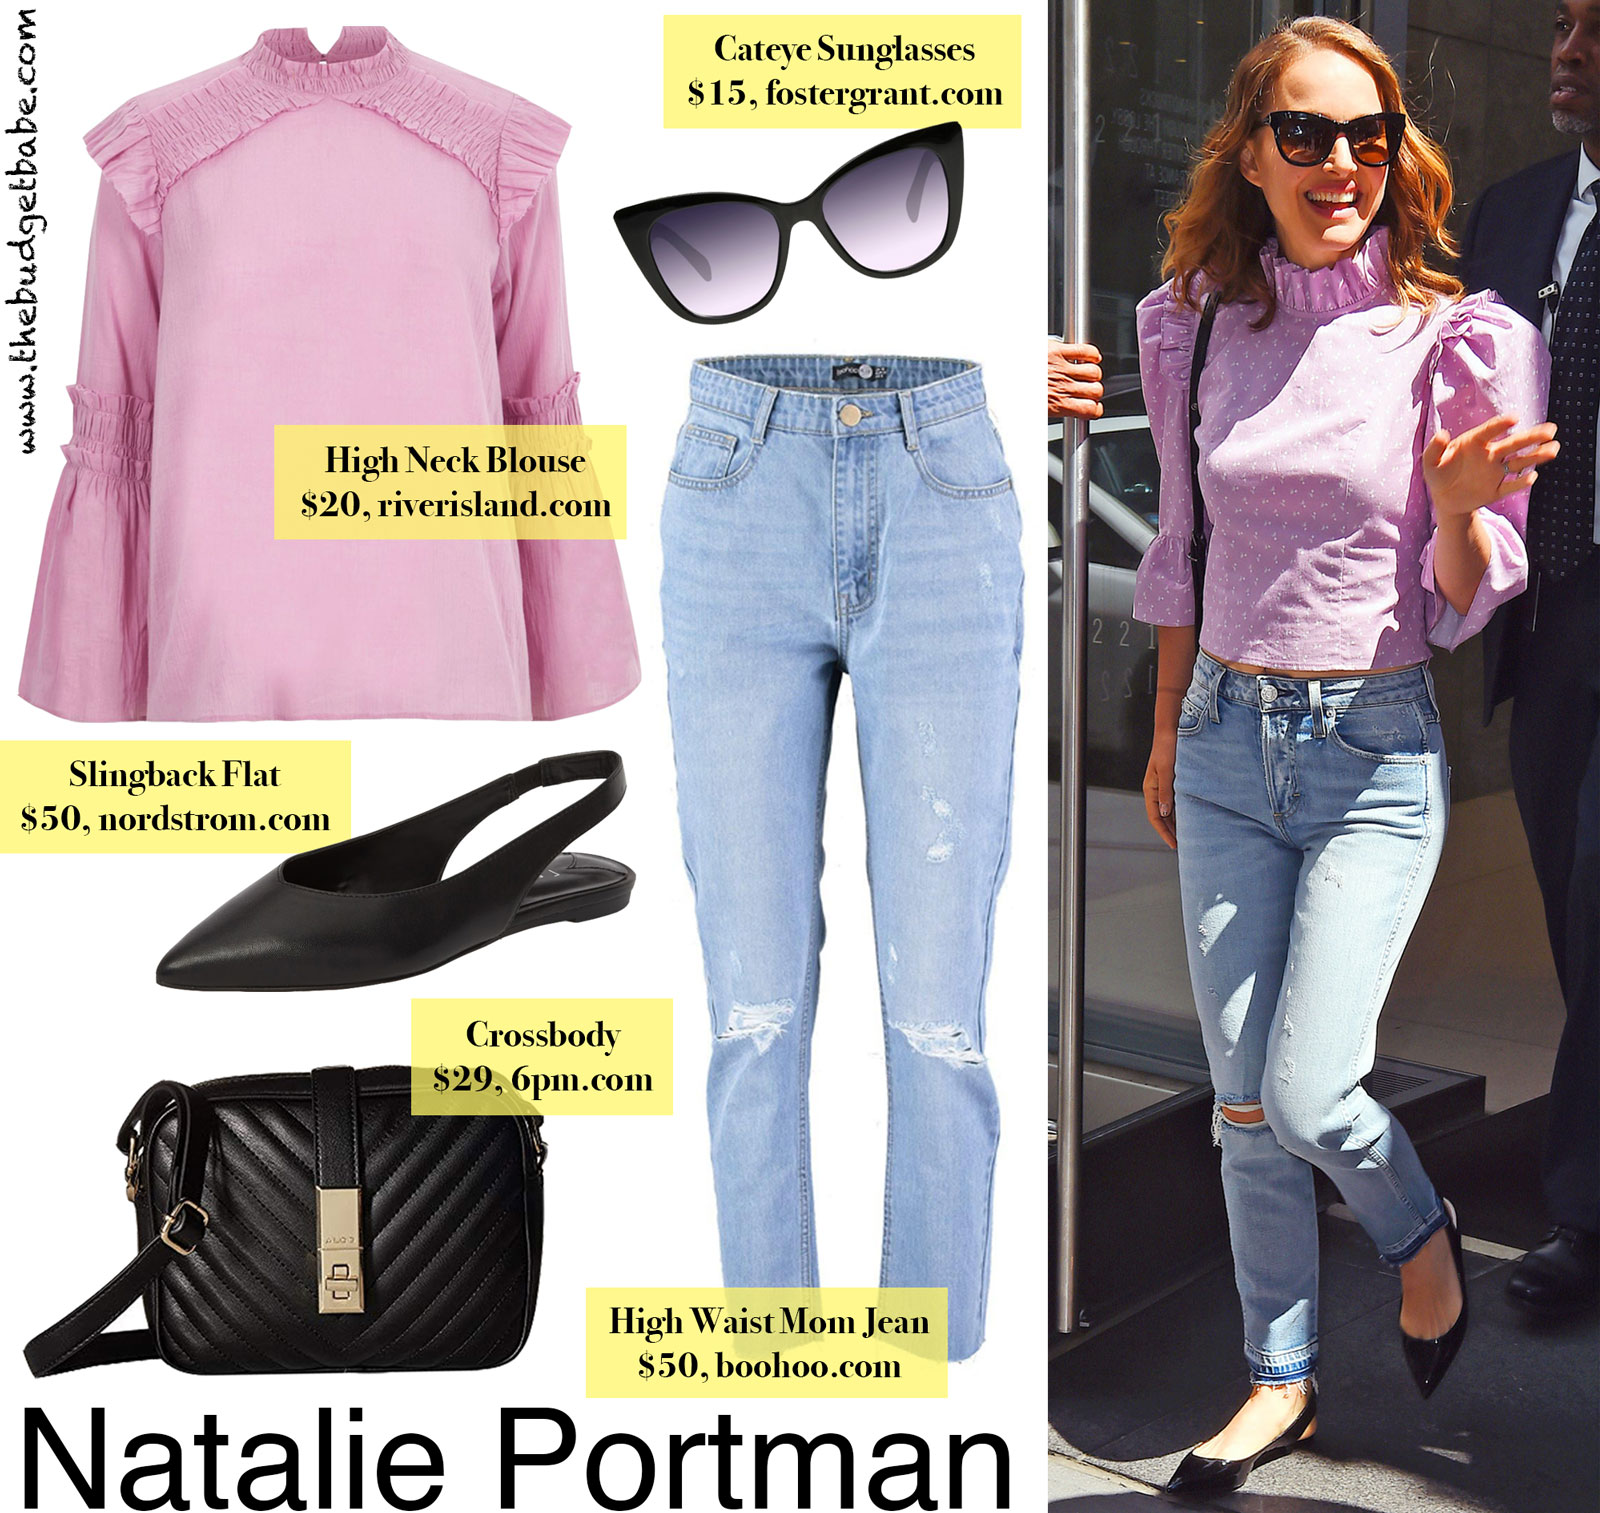 Natalie Portman High Neck Blouse Look for Less